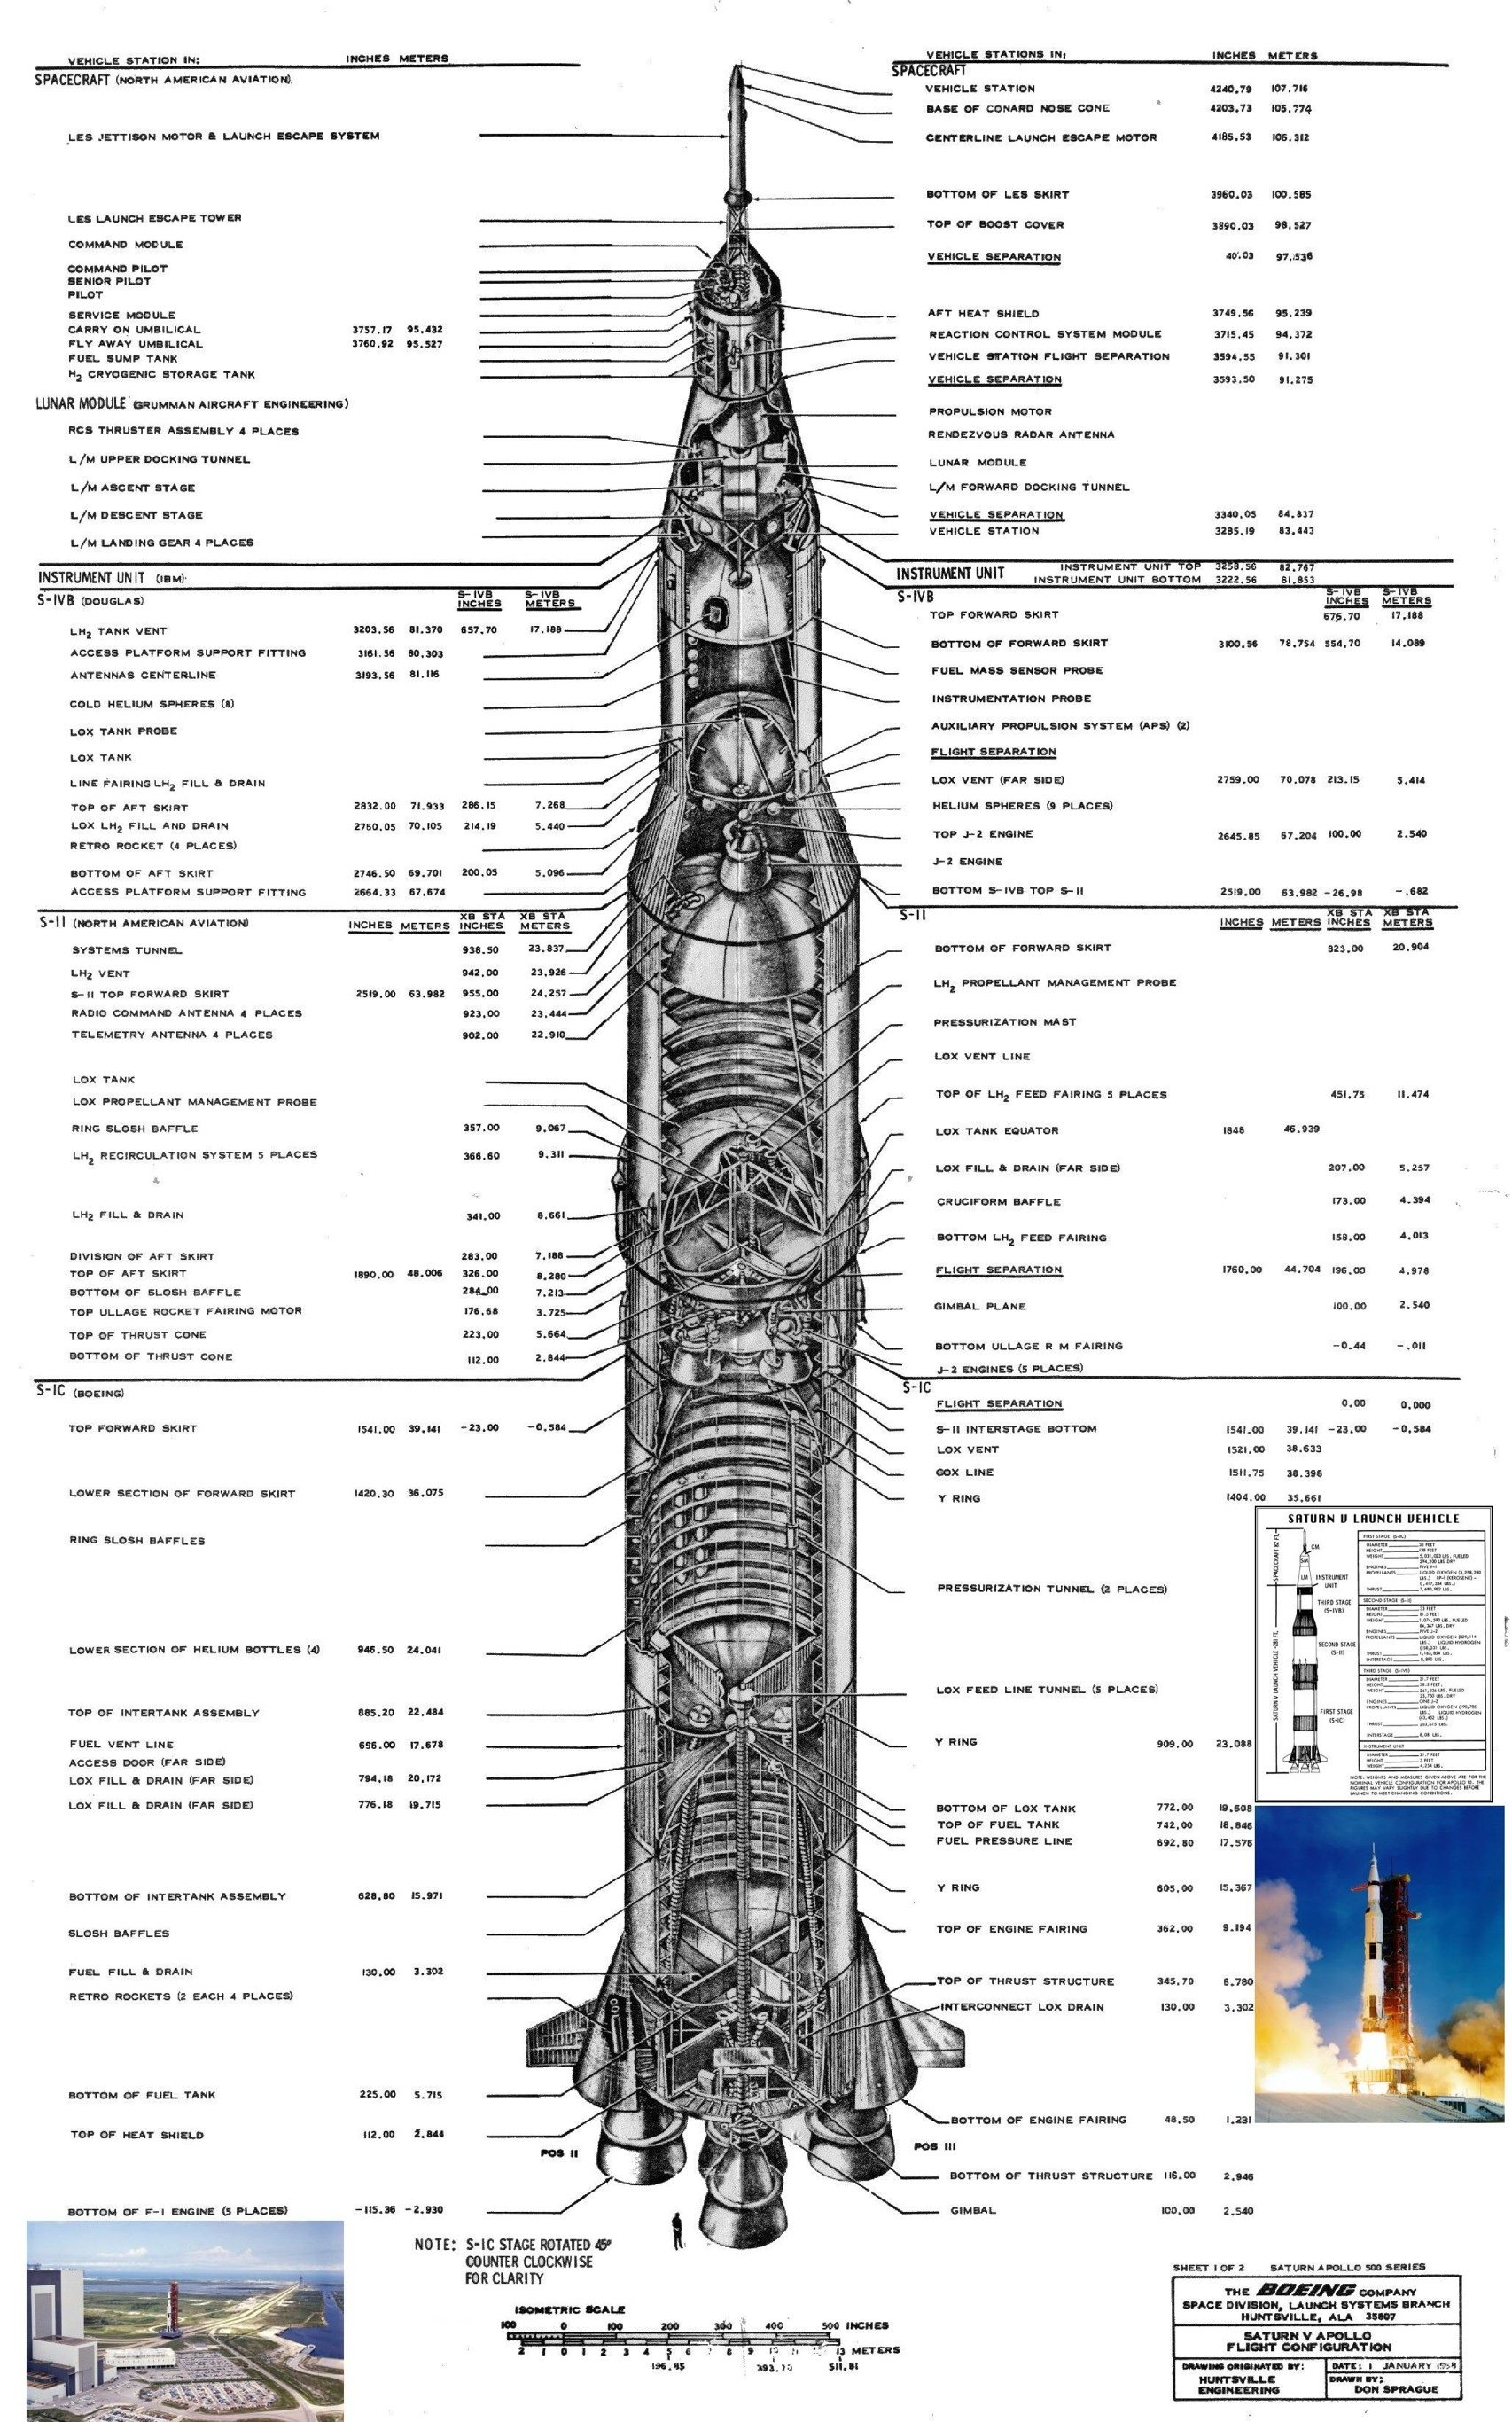 diagram of the saturn v rocket cut in half  u00ab adafruit industries  u2013 makers  hackers  artists